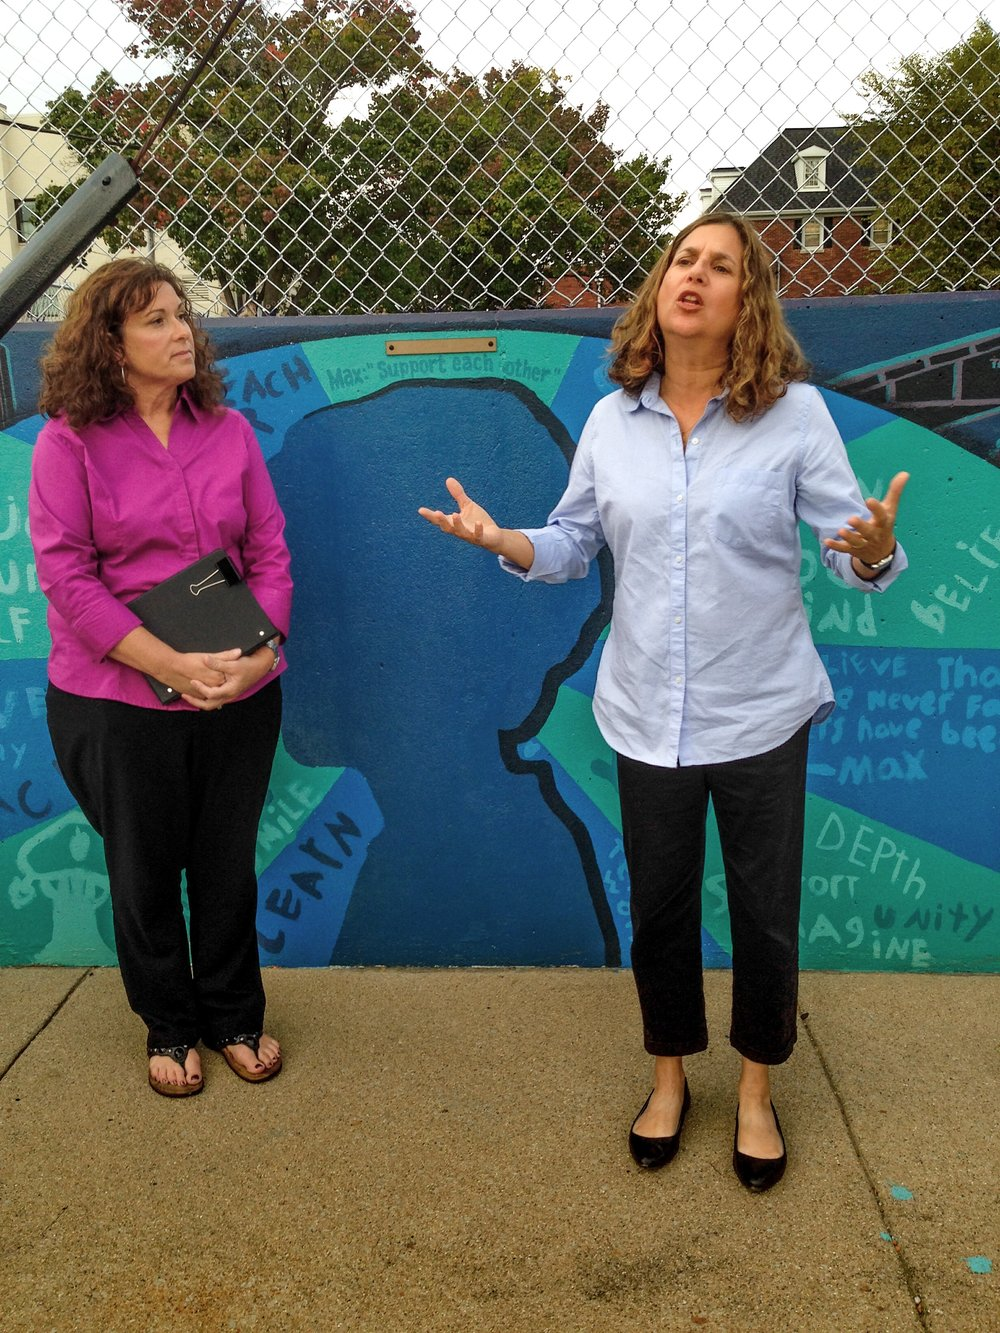 Moses Montefiore Congregation Rabbi Rebecca Dubowe, right, offers a blessing for the mural along with Bloomington First Christian Church Rev. Kelley Becker.